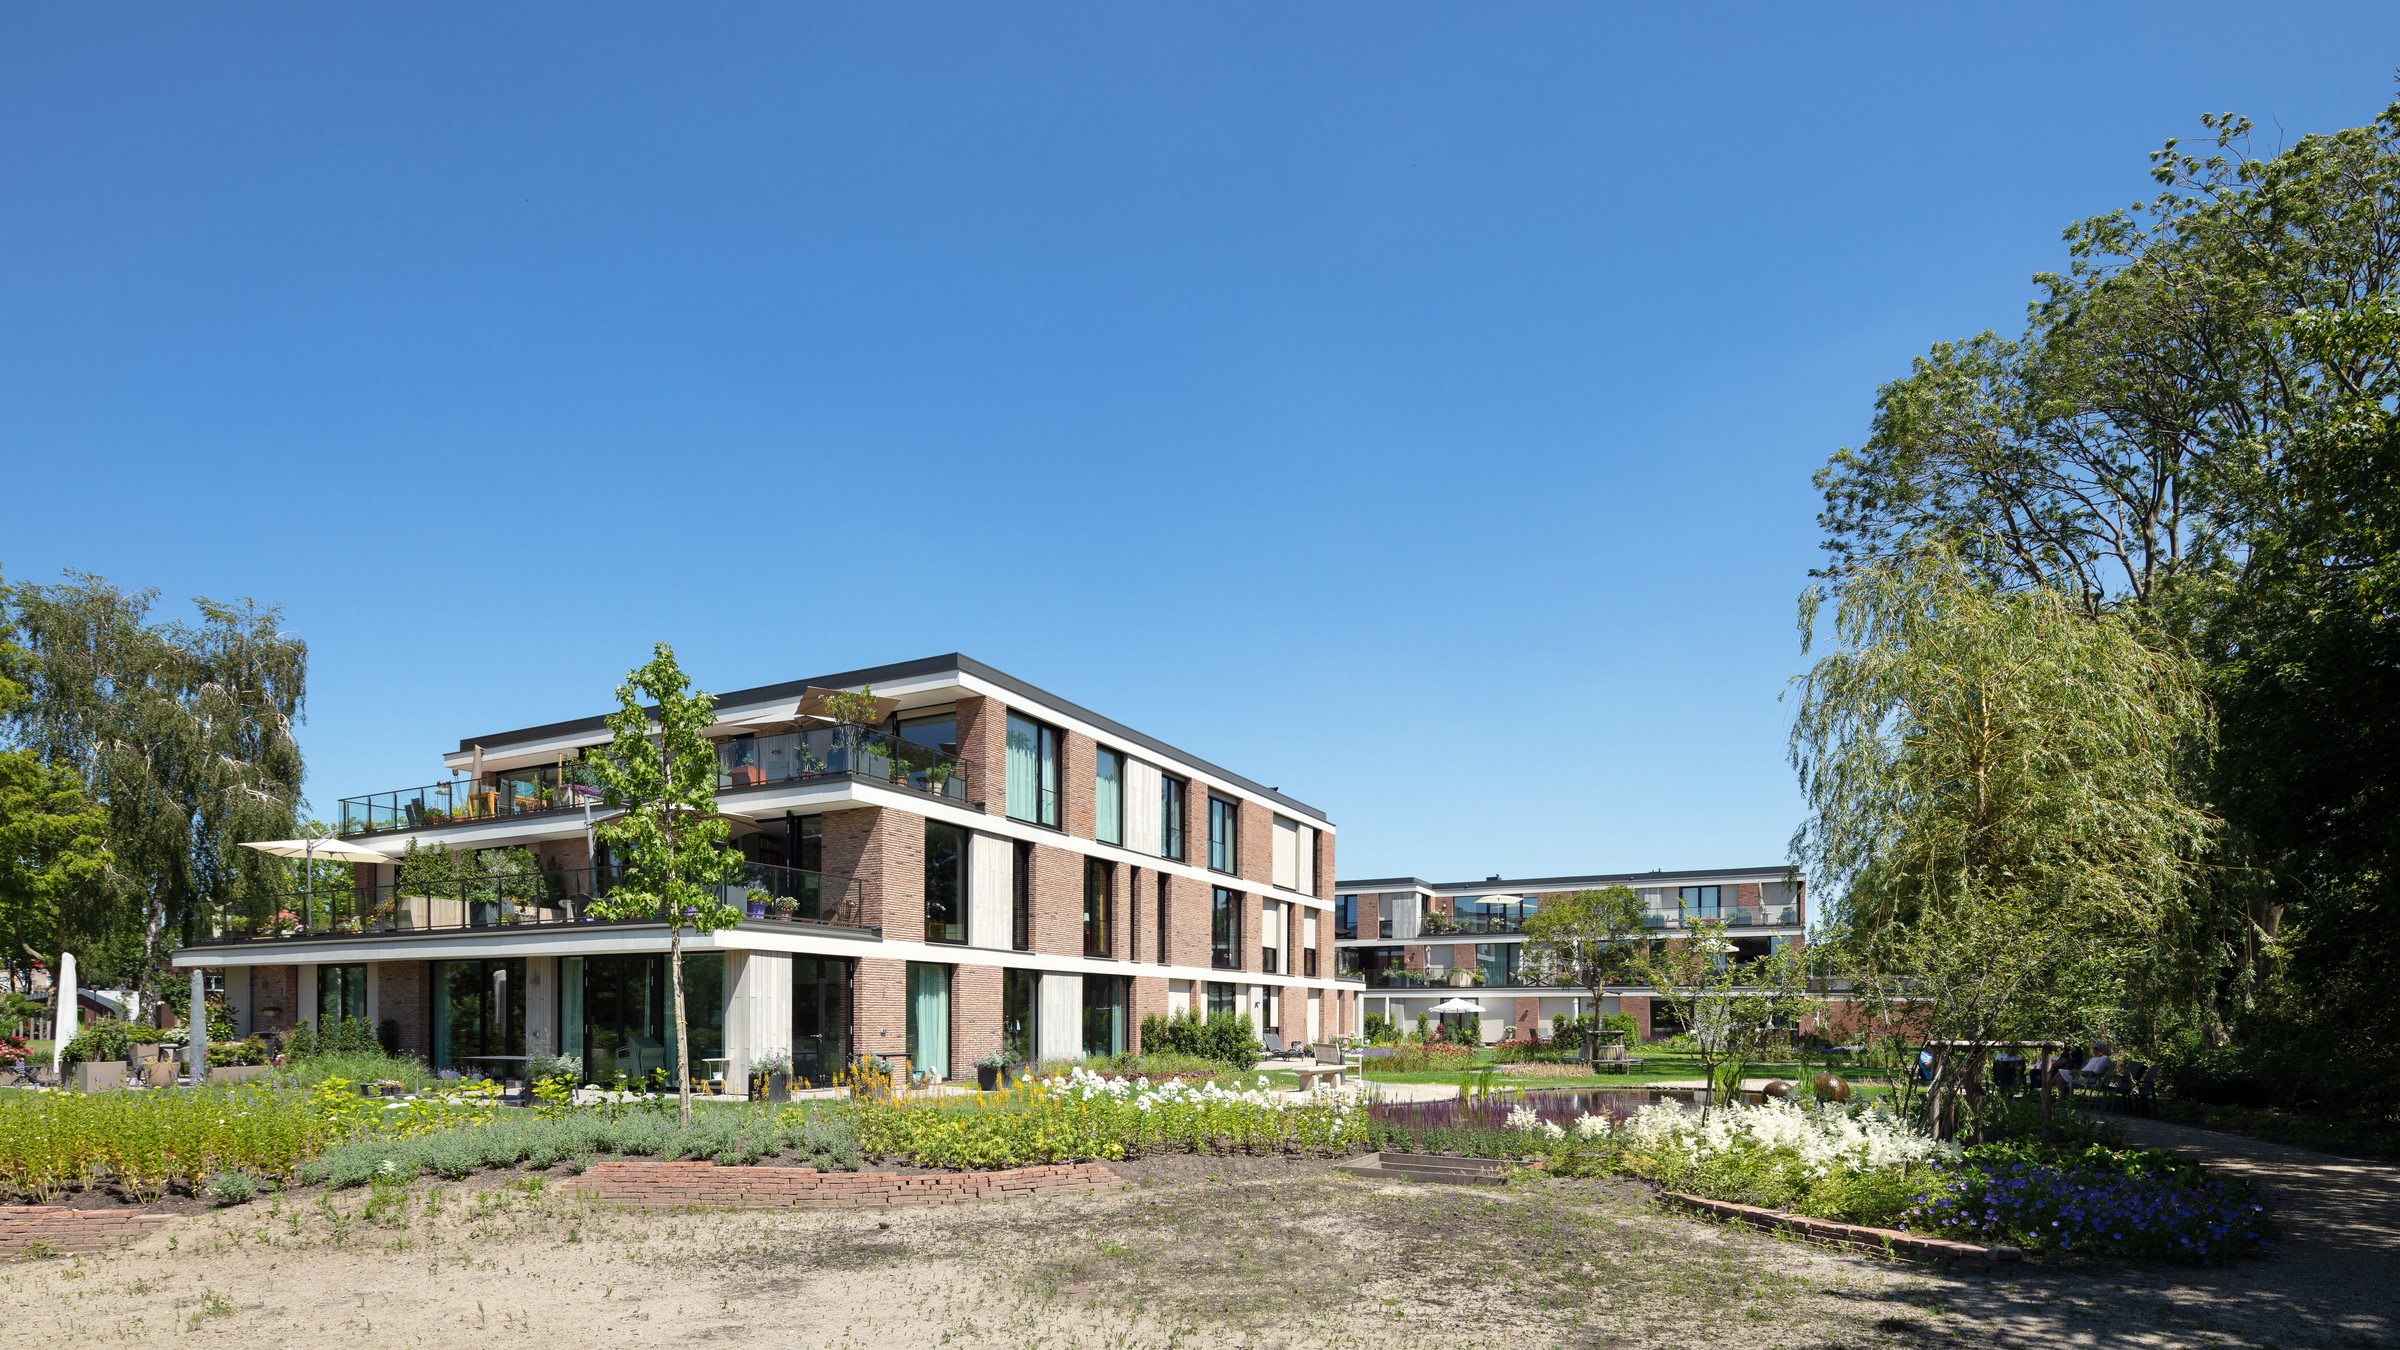 22-Zecc_Architecten-Surplus-Zeist-Apartment_buildin.JPG